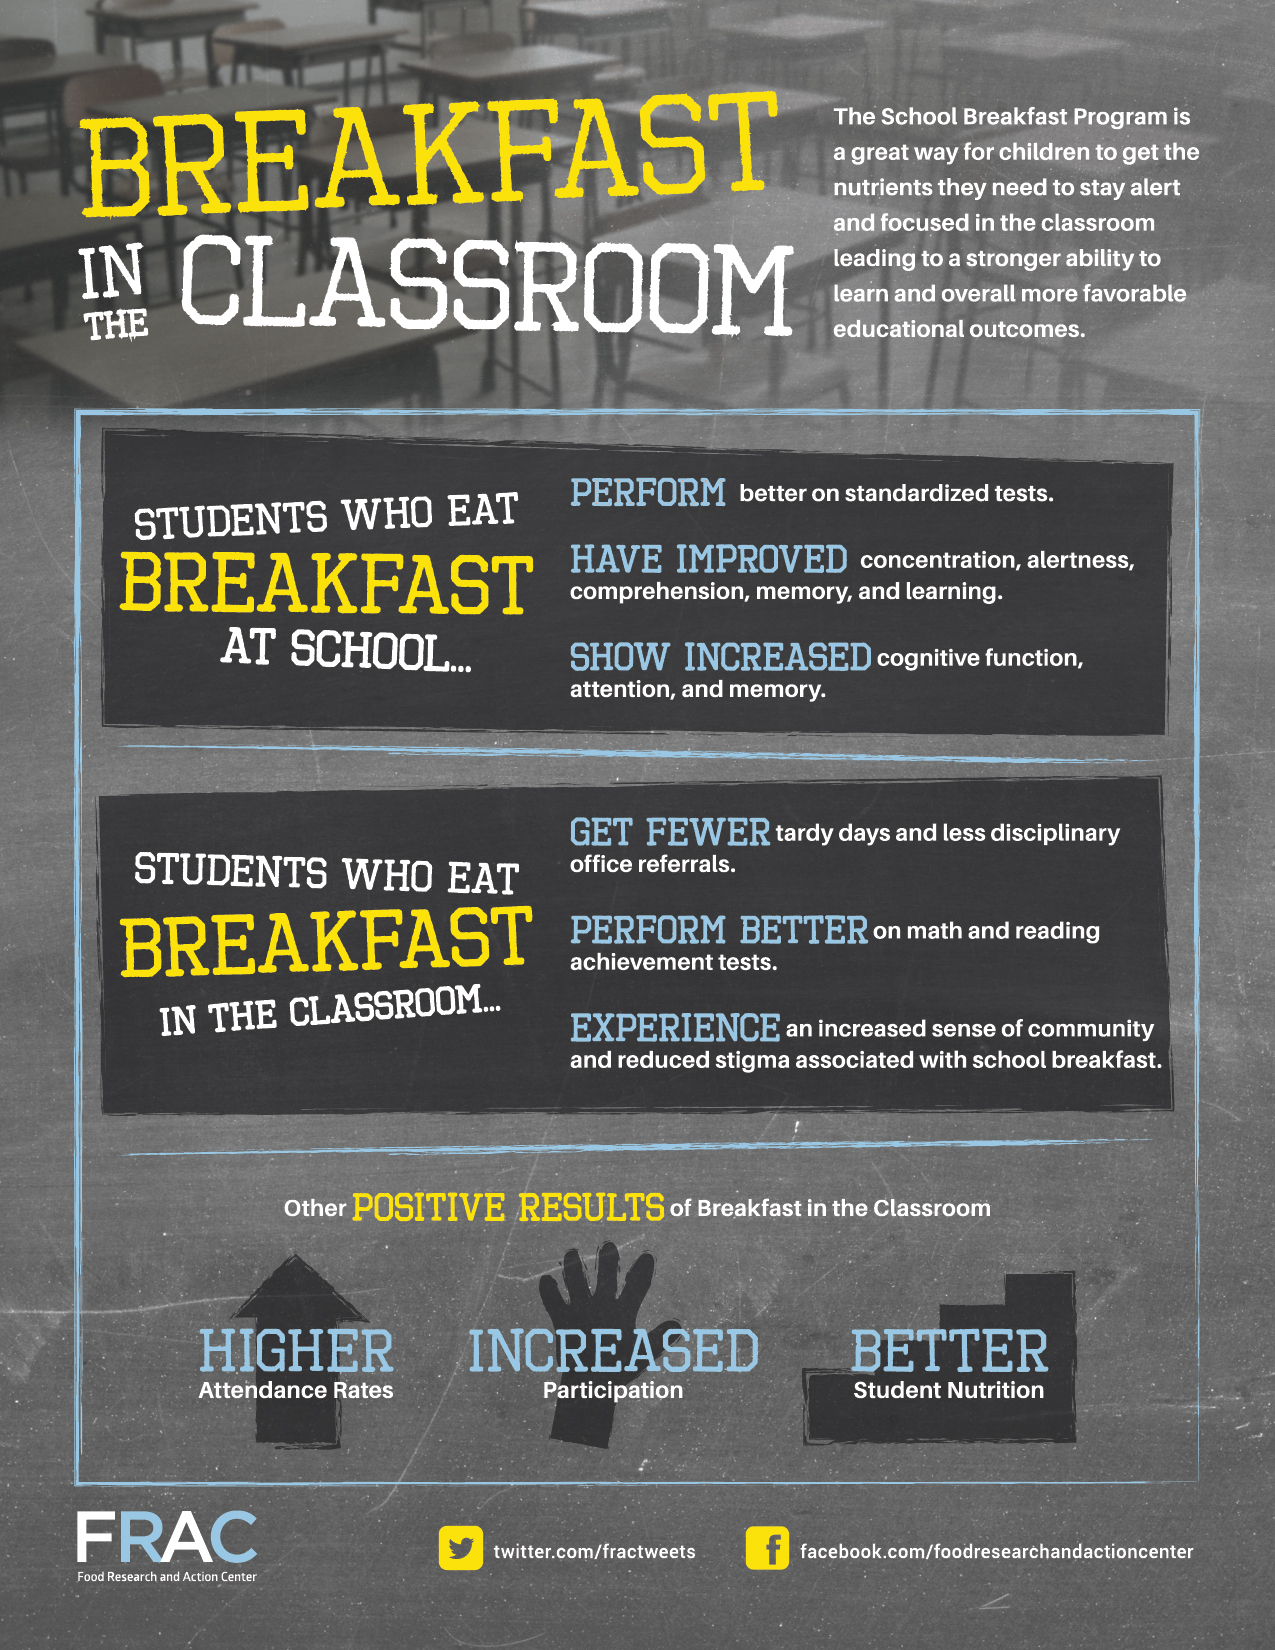 9 Benefits To Eating Breakfast For Students